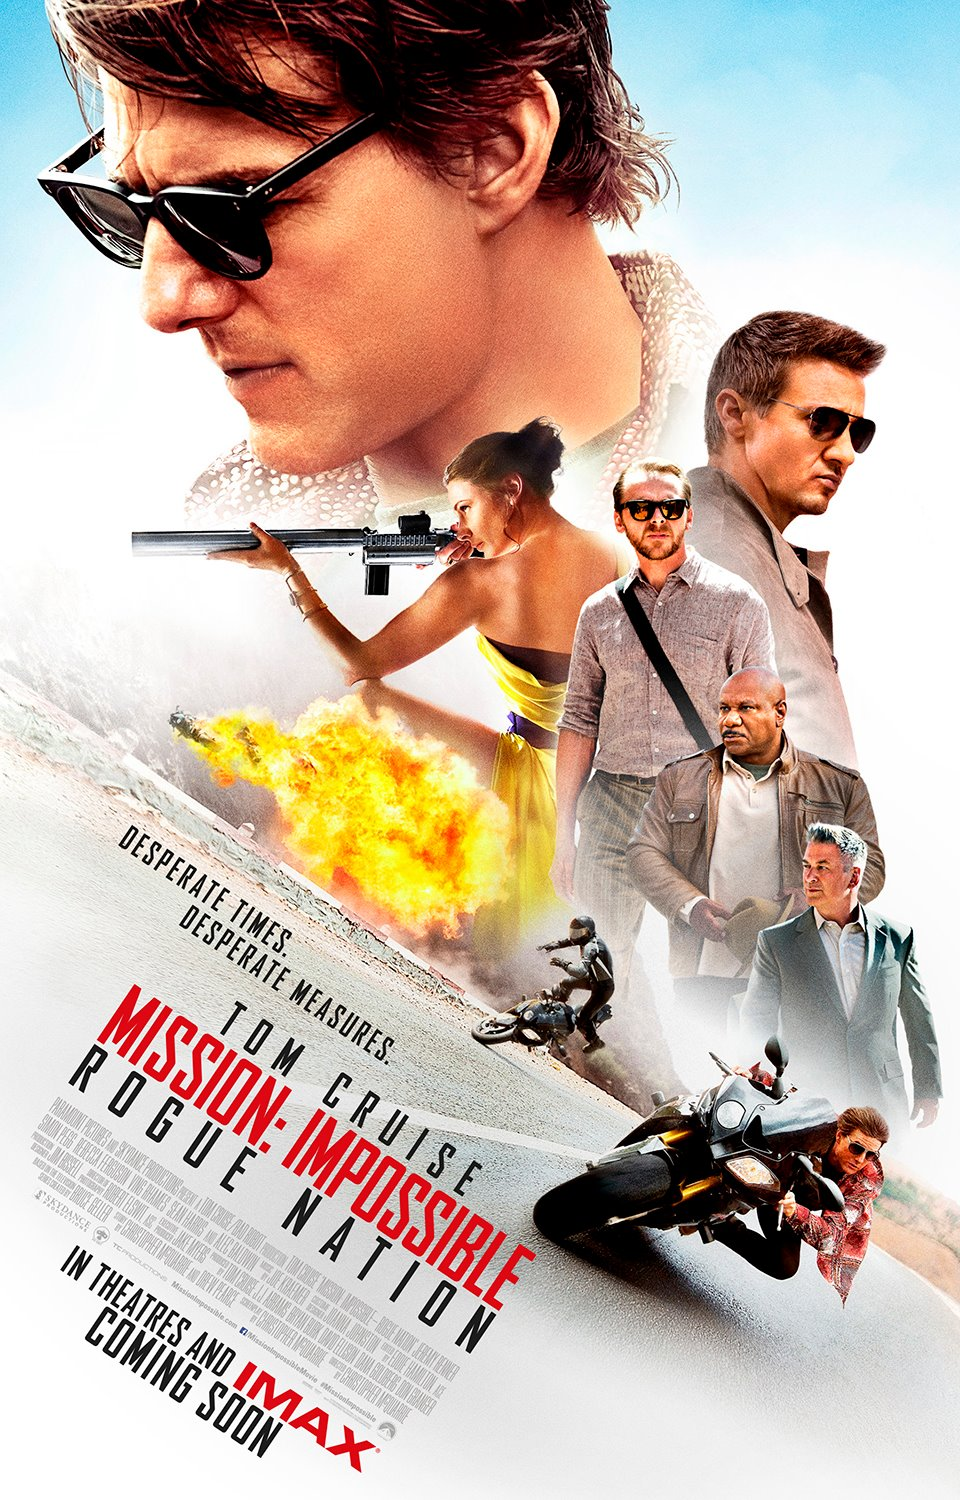 http://i0.wp.com/teaser-trailer.com/wp-content/uploads/mission_impossible__rogue_nation_latest_poster-2.jpg